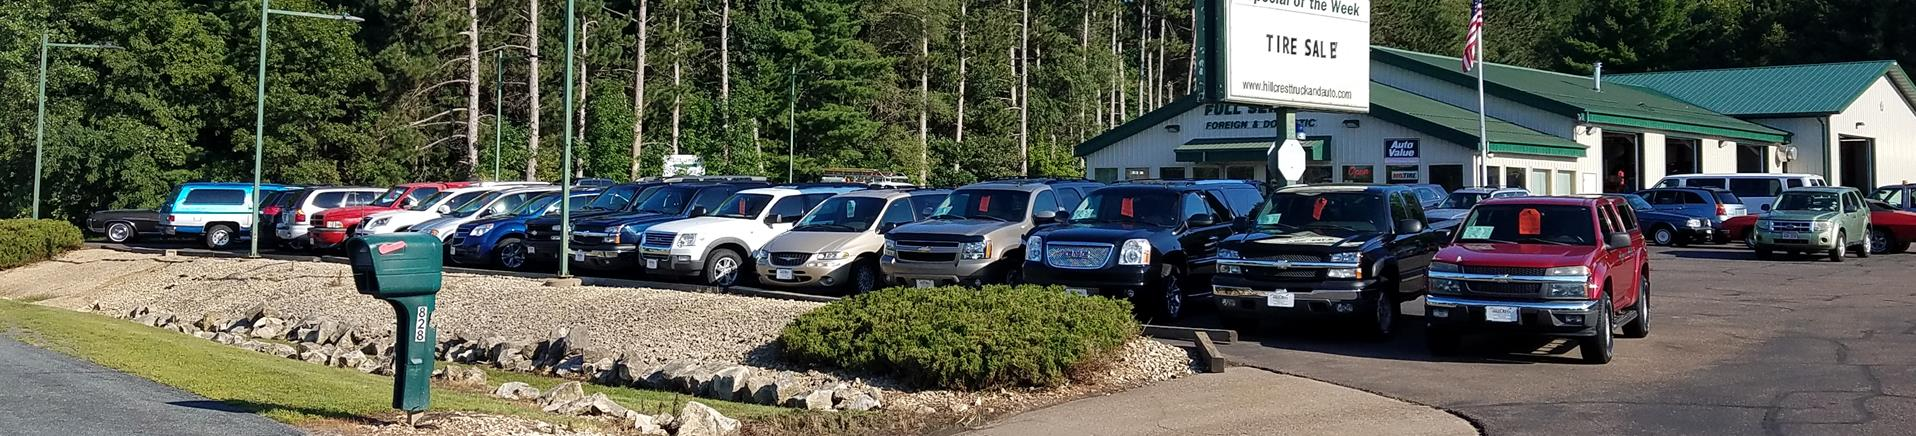 Used Cars Eau Claire WI | Used Cars & Trucks WI | Steve's Hillcrest